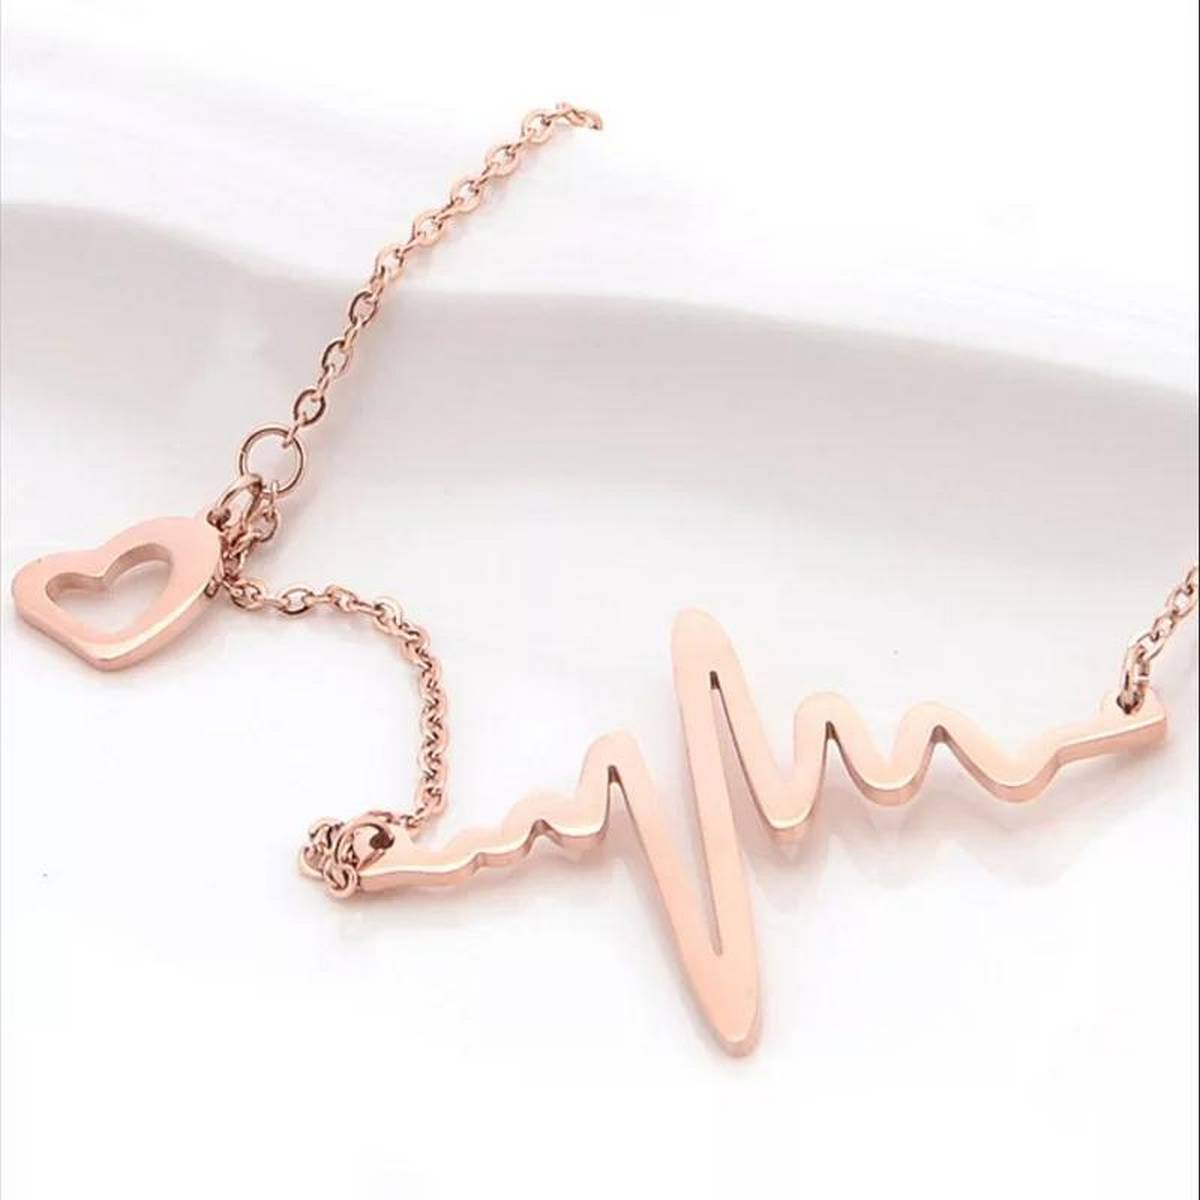 IMPORTED TRENDY NEW FASHION 22 K GOLD PLATED ECG WAVE HEART BEAT PENDANT NECKLACE FOR GIRLS